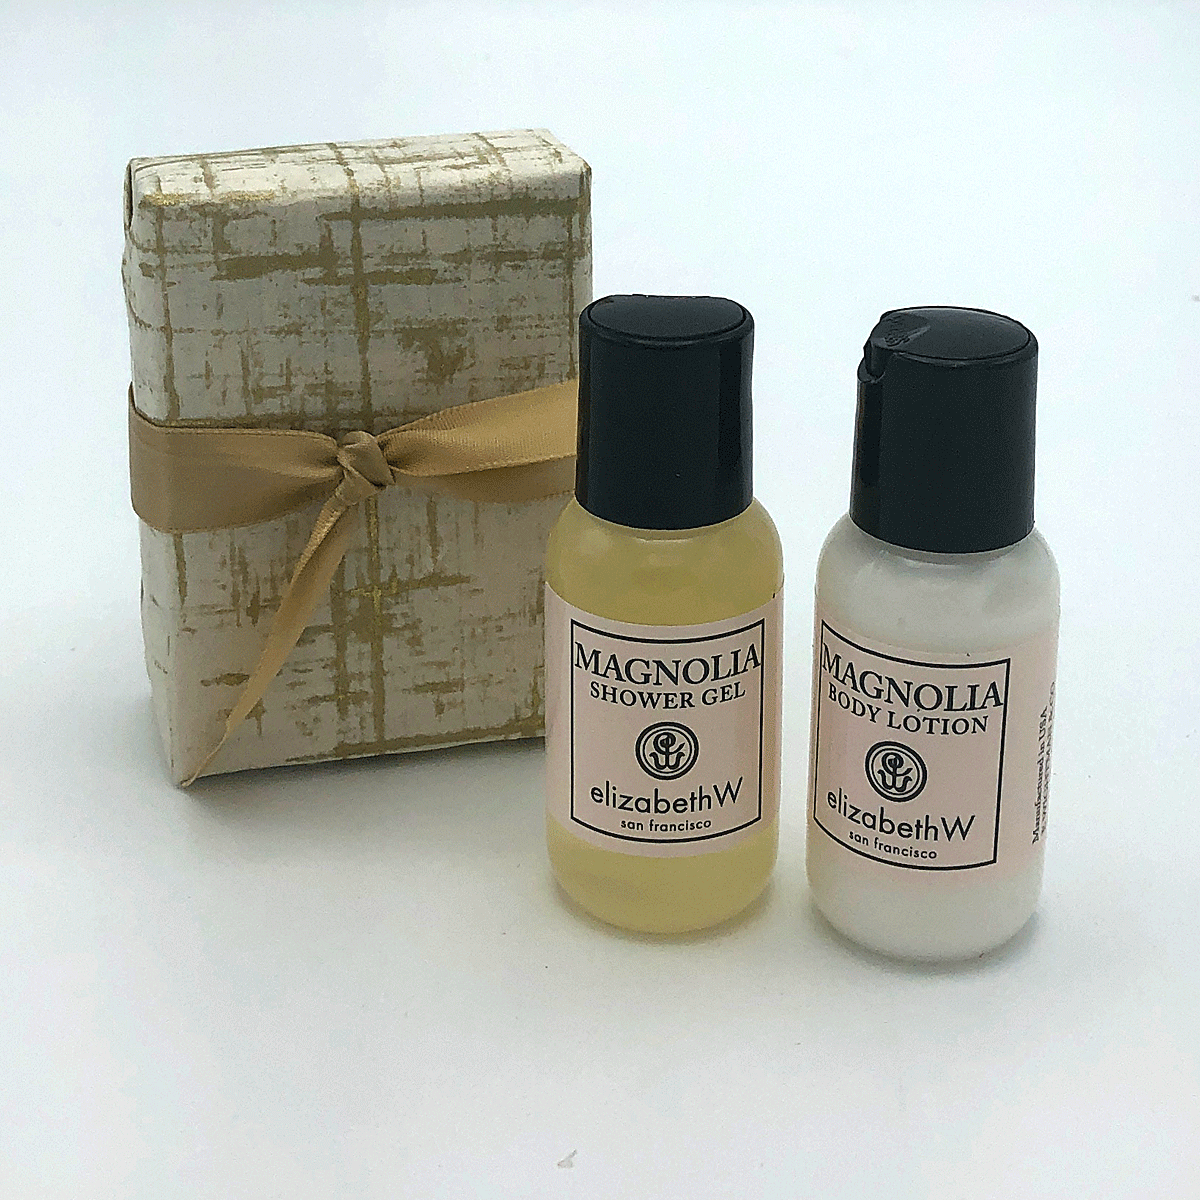 Magnolia Travel Set with Shower Gel and Body Lotion